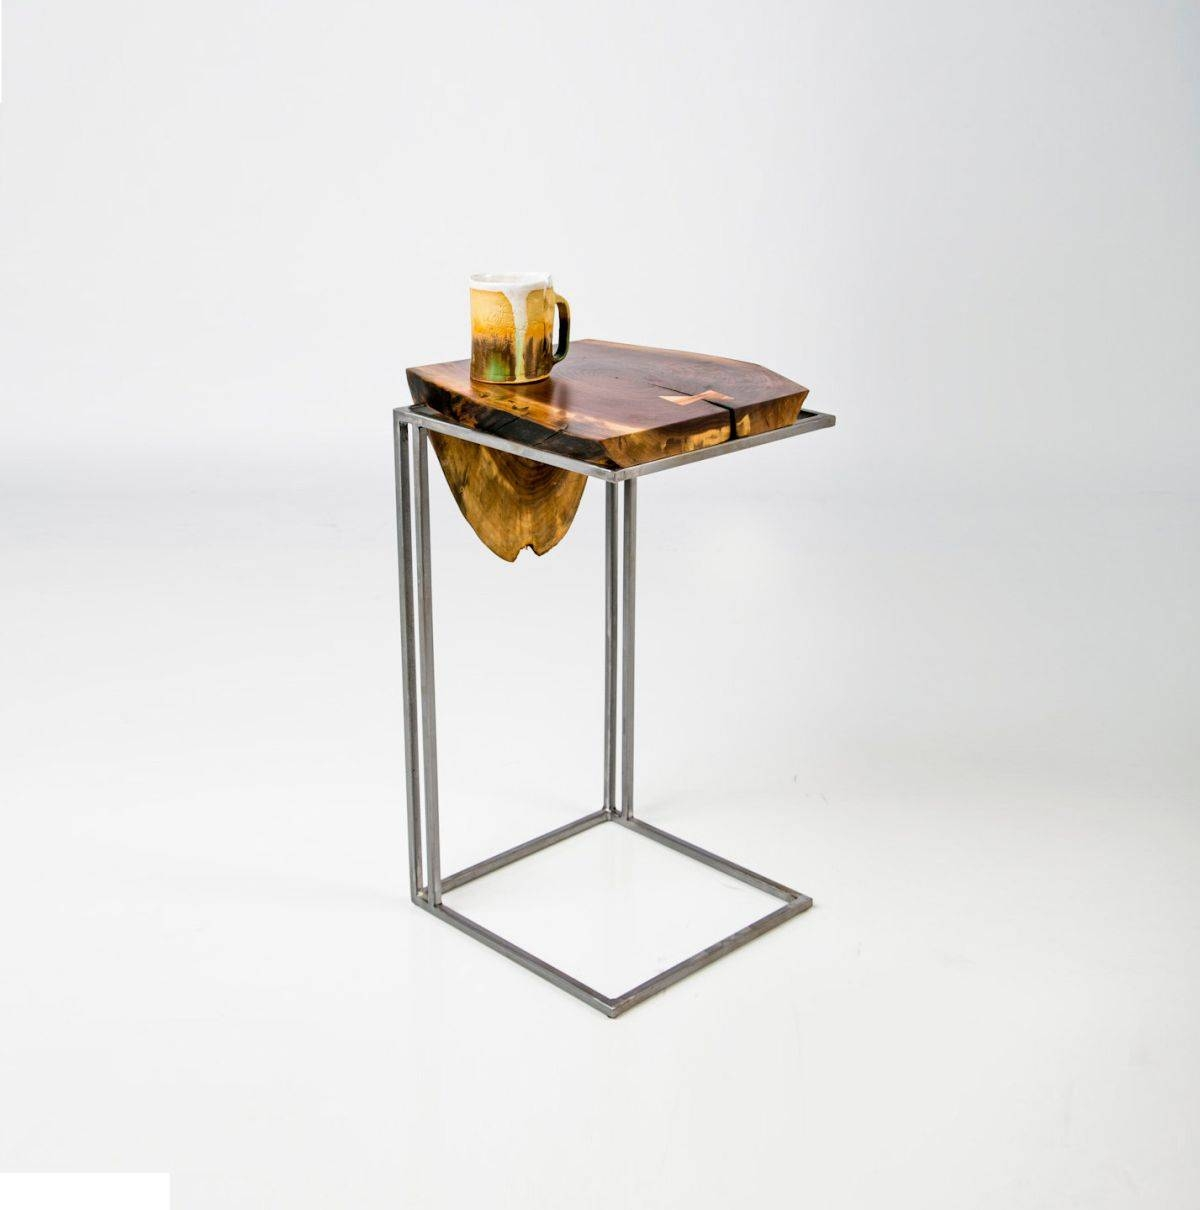 Modern C Tv Tray Table With Solid Wooden Top And Metal Stand Ideas within Folding Tv Trays With Stand (Image 7 of 15)